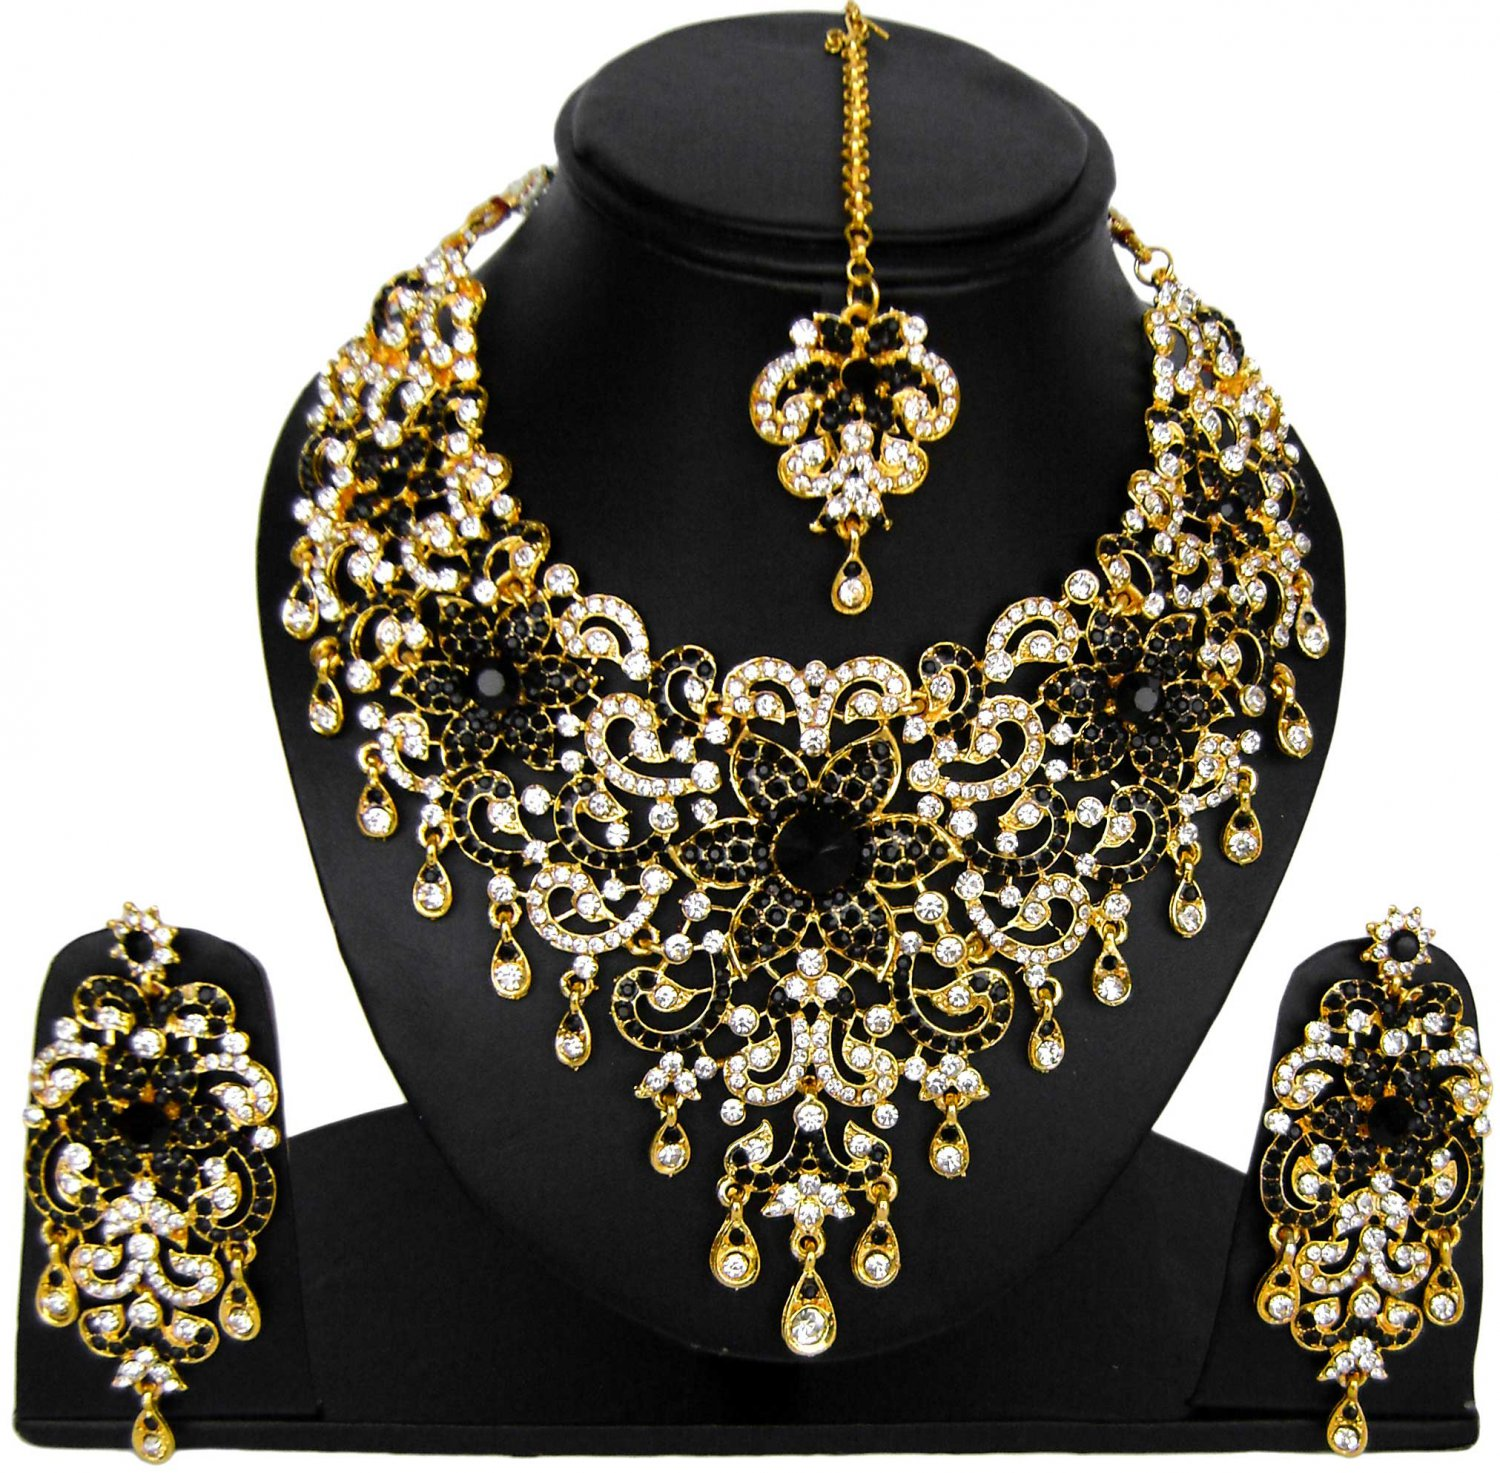 American Diamond Jewelry Flower Inspired Attractive Princess Style Necklace Earrings Set Balck Color